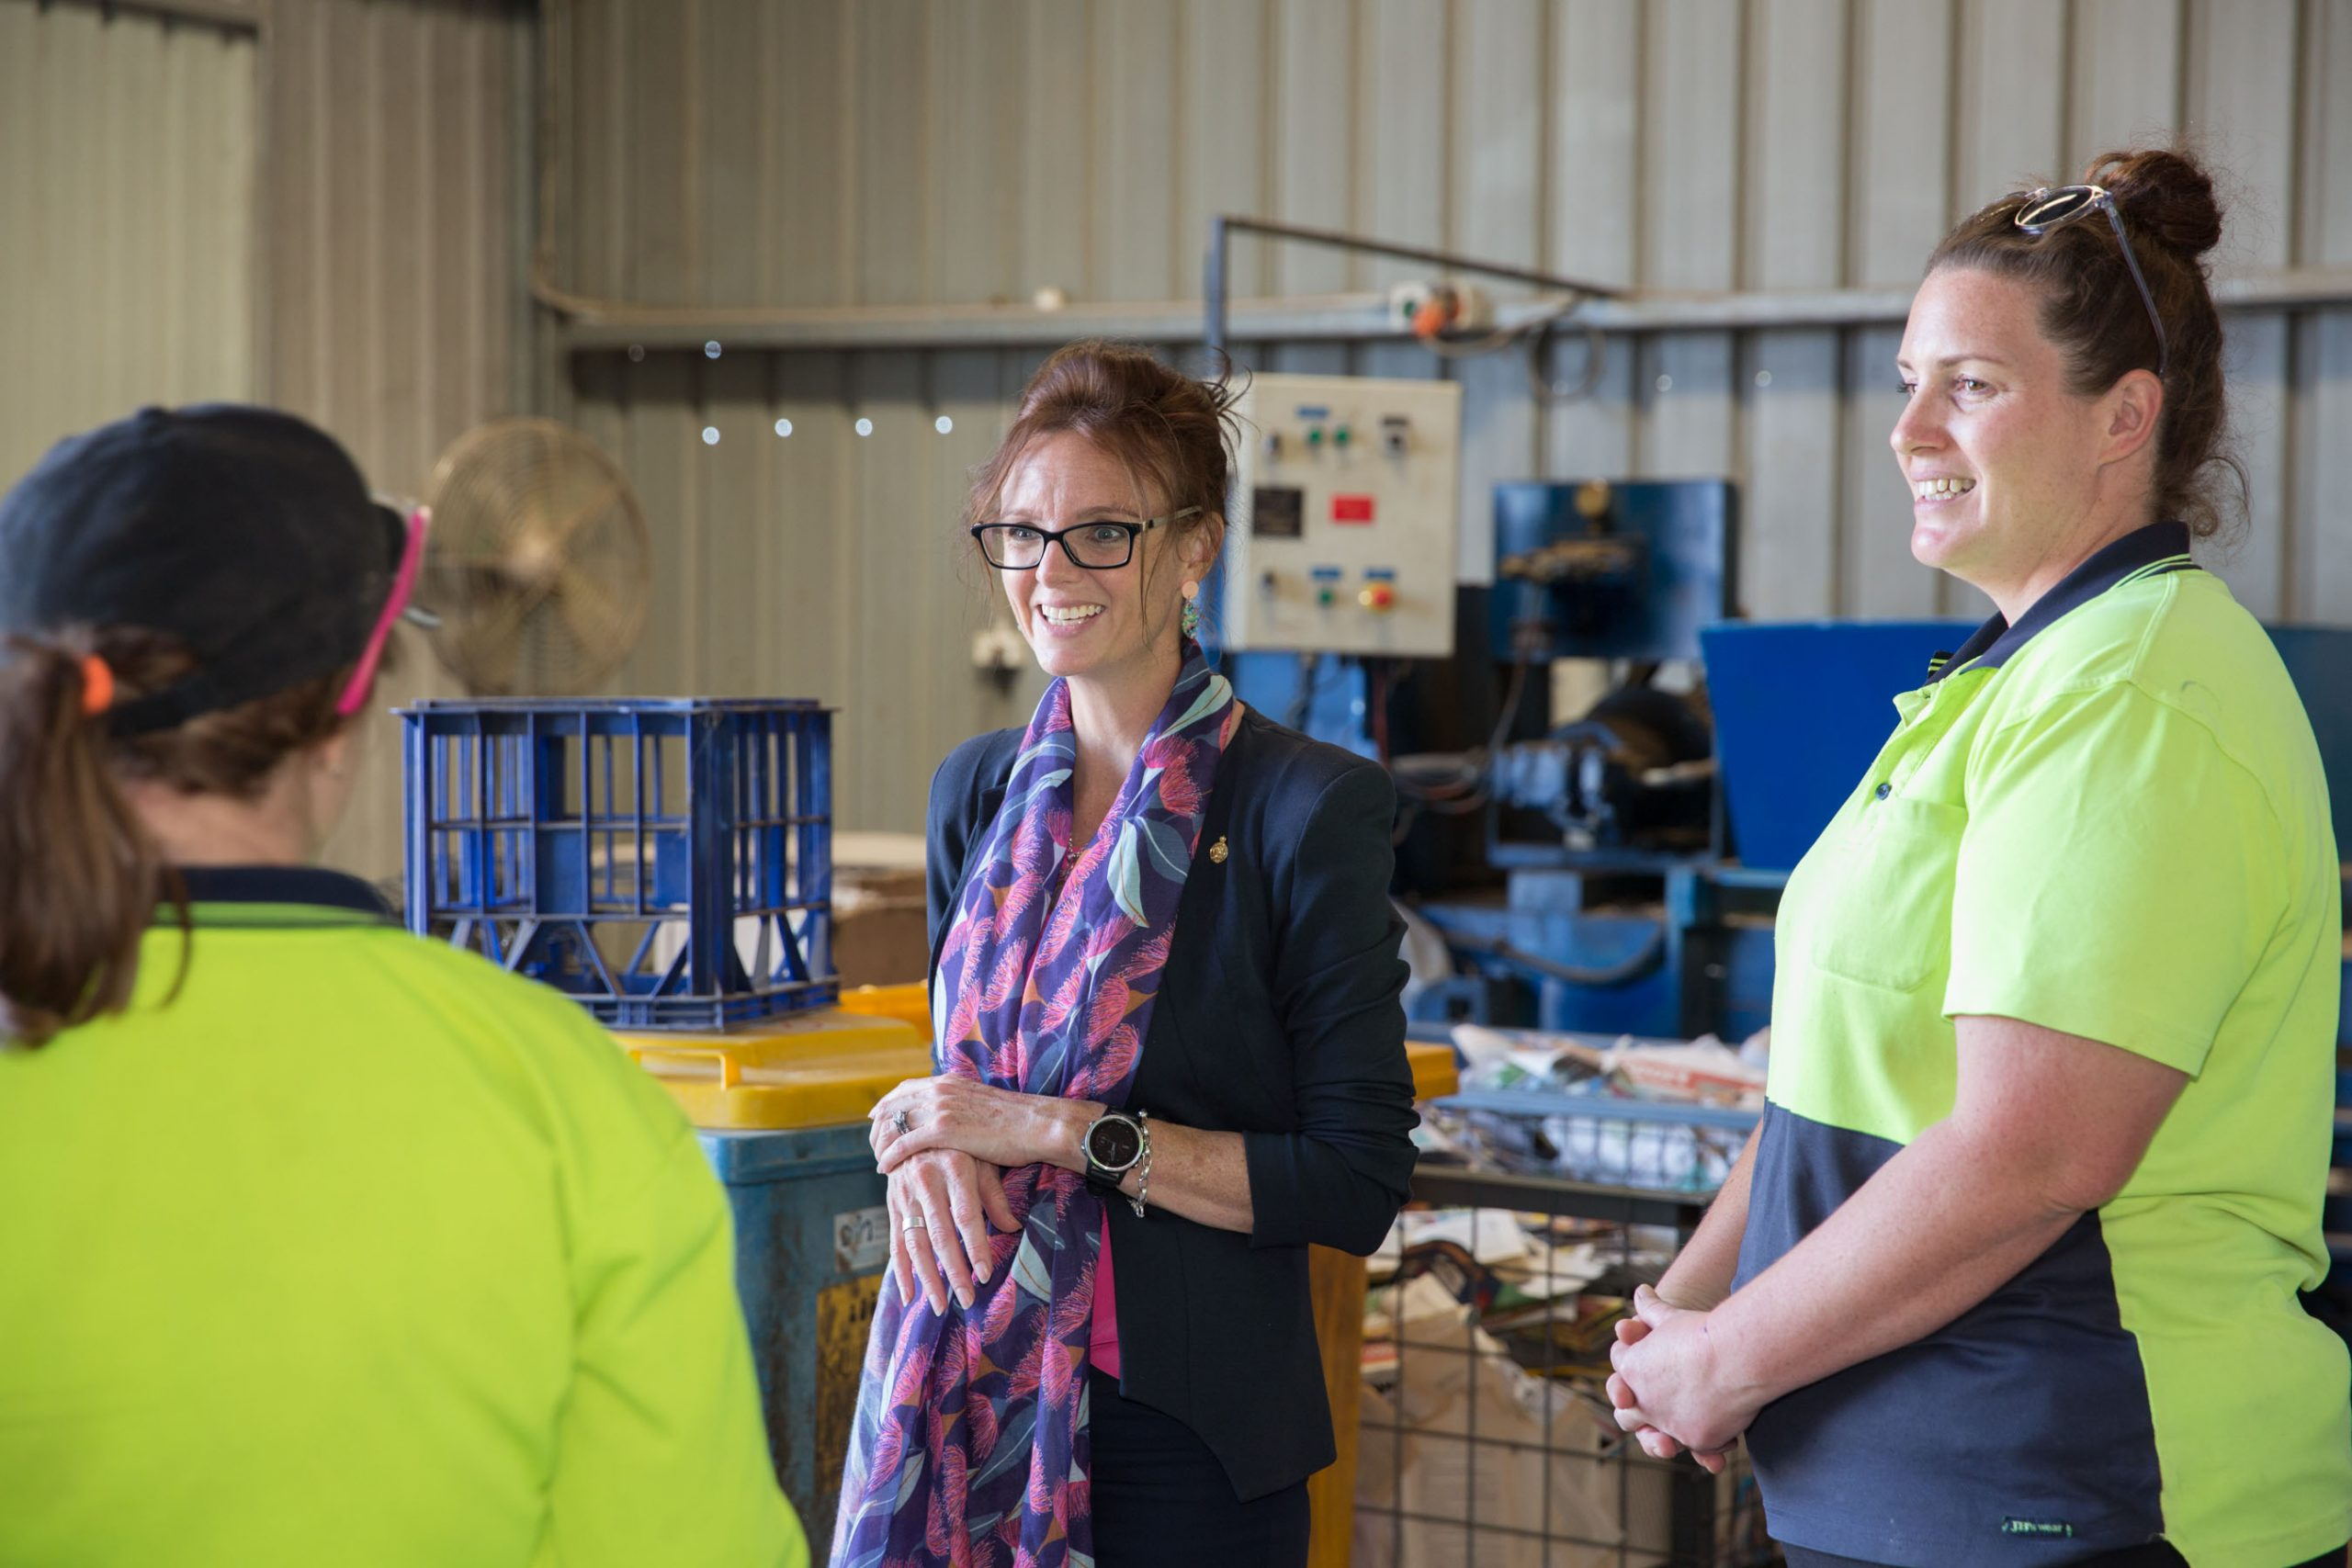 Steph Cooke with two Kurrajong employees in high-visibility clothing stand near large containers of cardboard and recyclable materials.